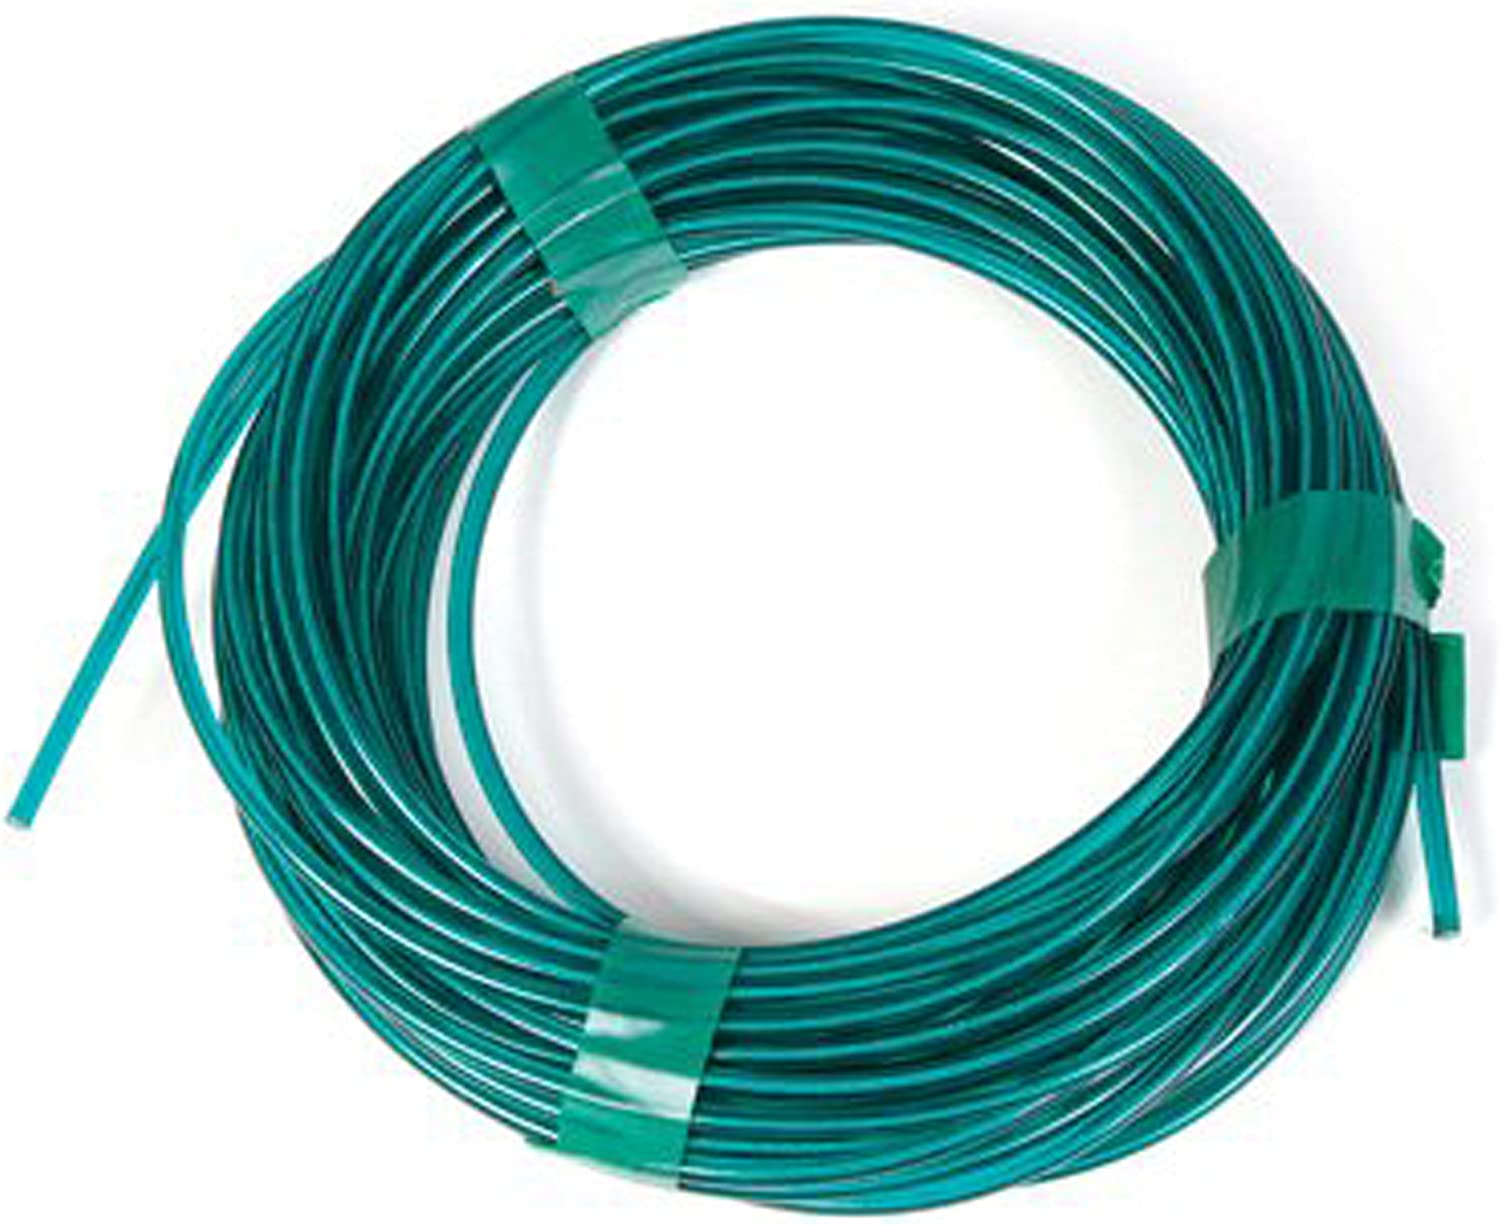 Koch 5630515 No.5 by 50-Feet Vinyl Coated Wire Clothesline, Green